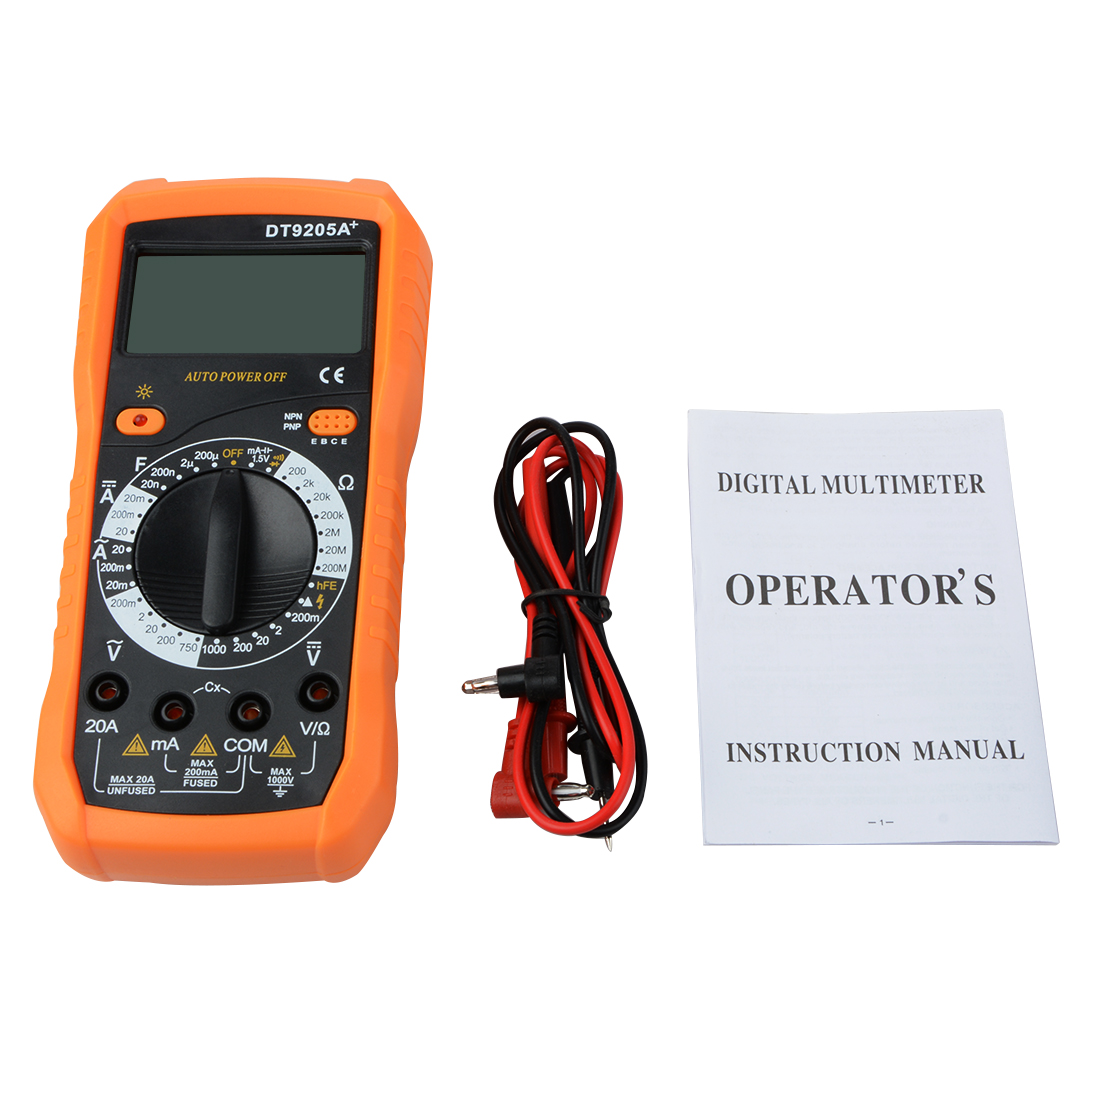 Multimeter DT9205A AC LCD Display Professional Electric Handheld Tester Meter Digital Multimeter Multimetro Ammeter Multitester handheld large screen multimeter lcd display accurate detection digital multimeter victor 88b